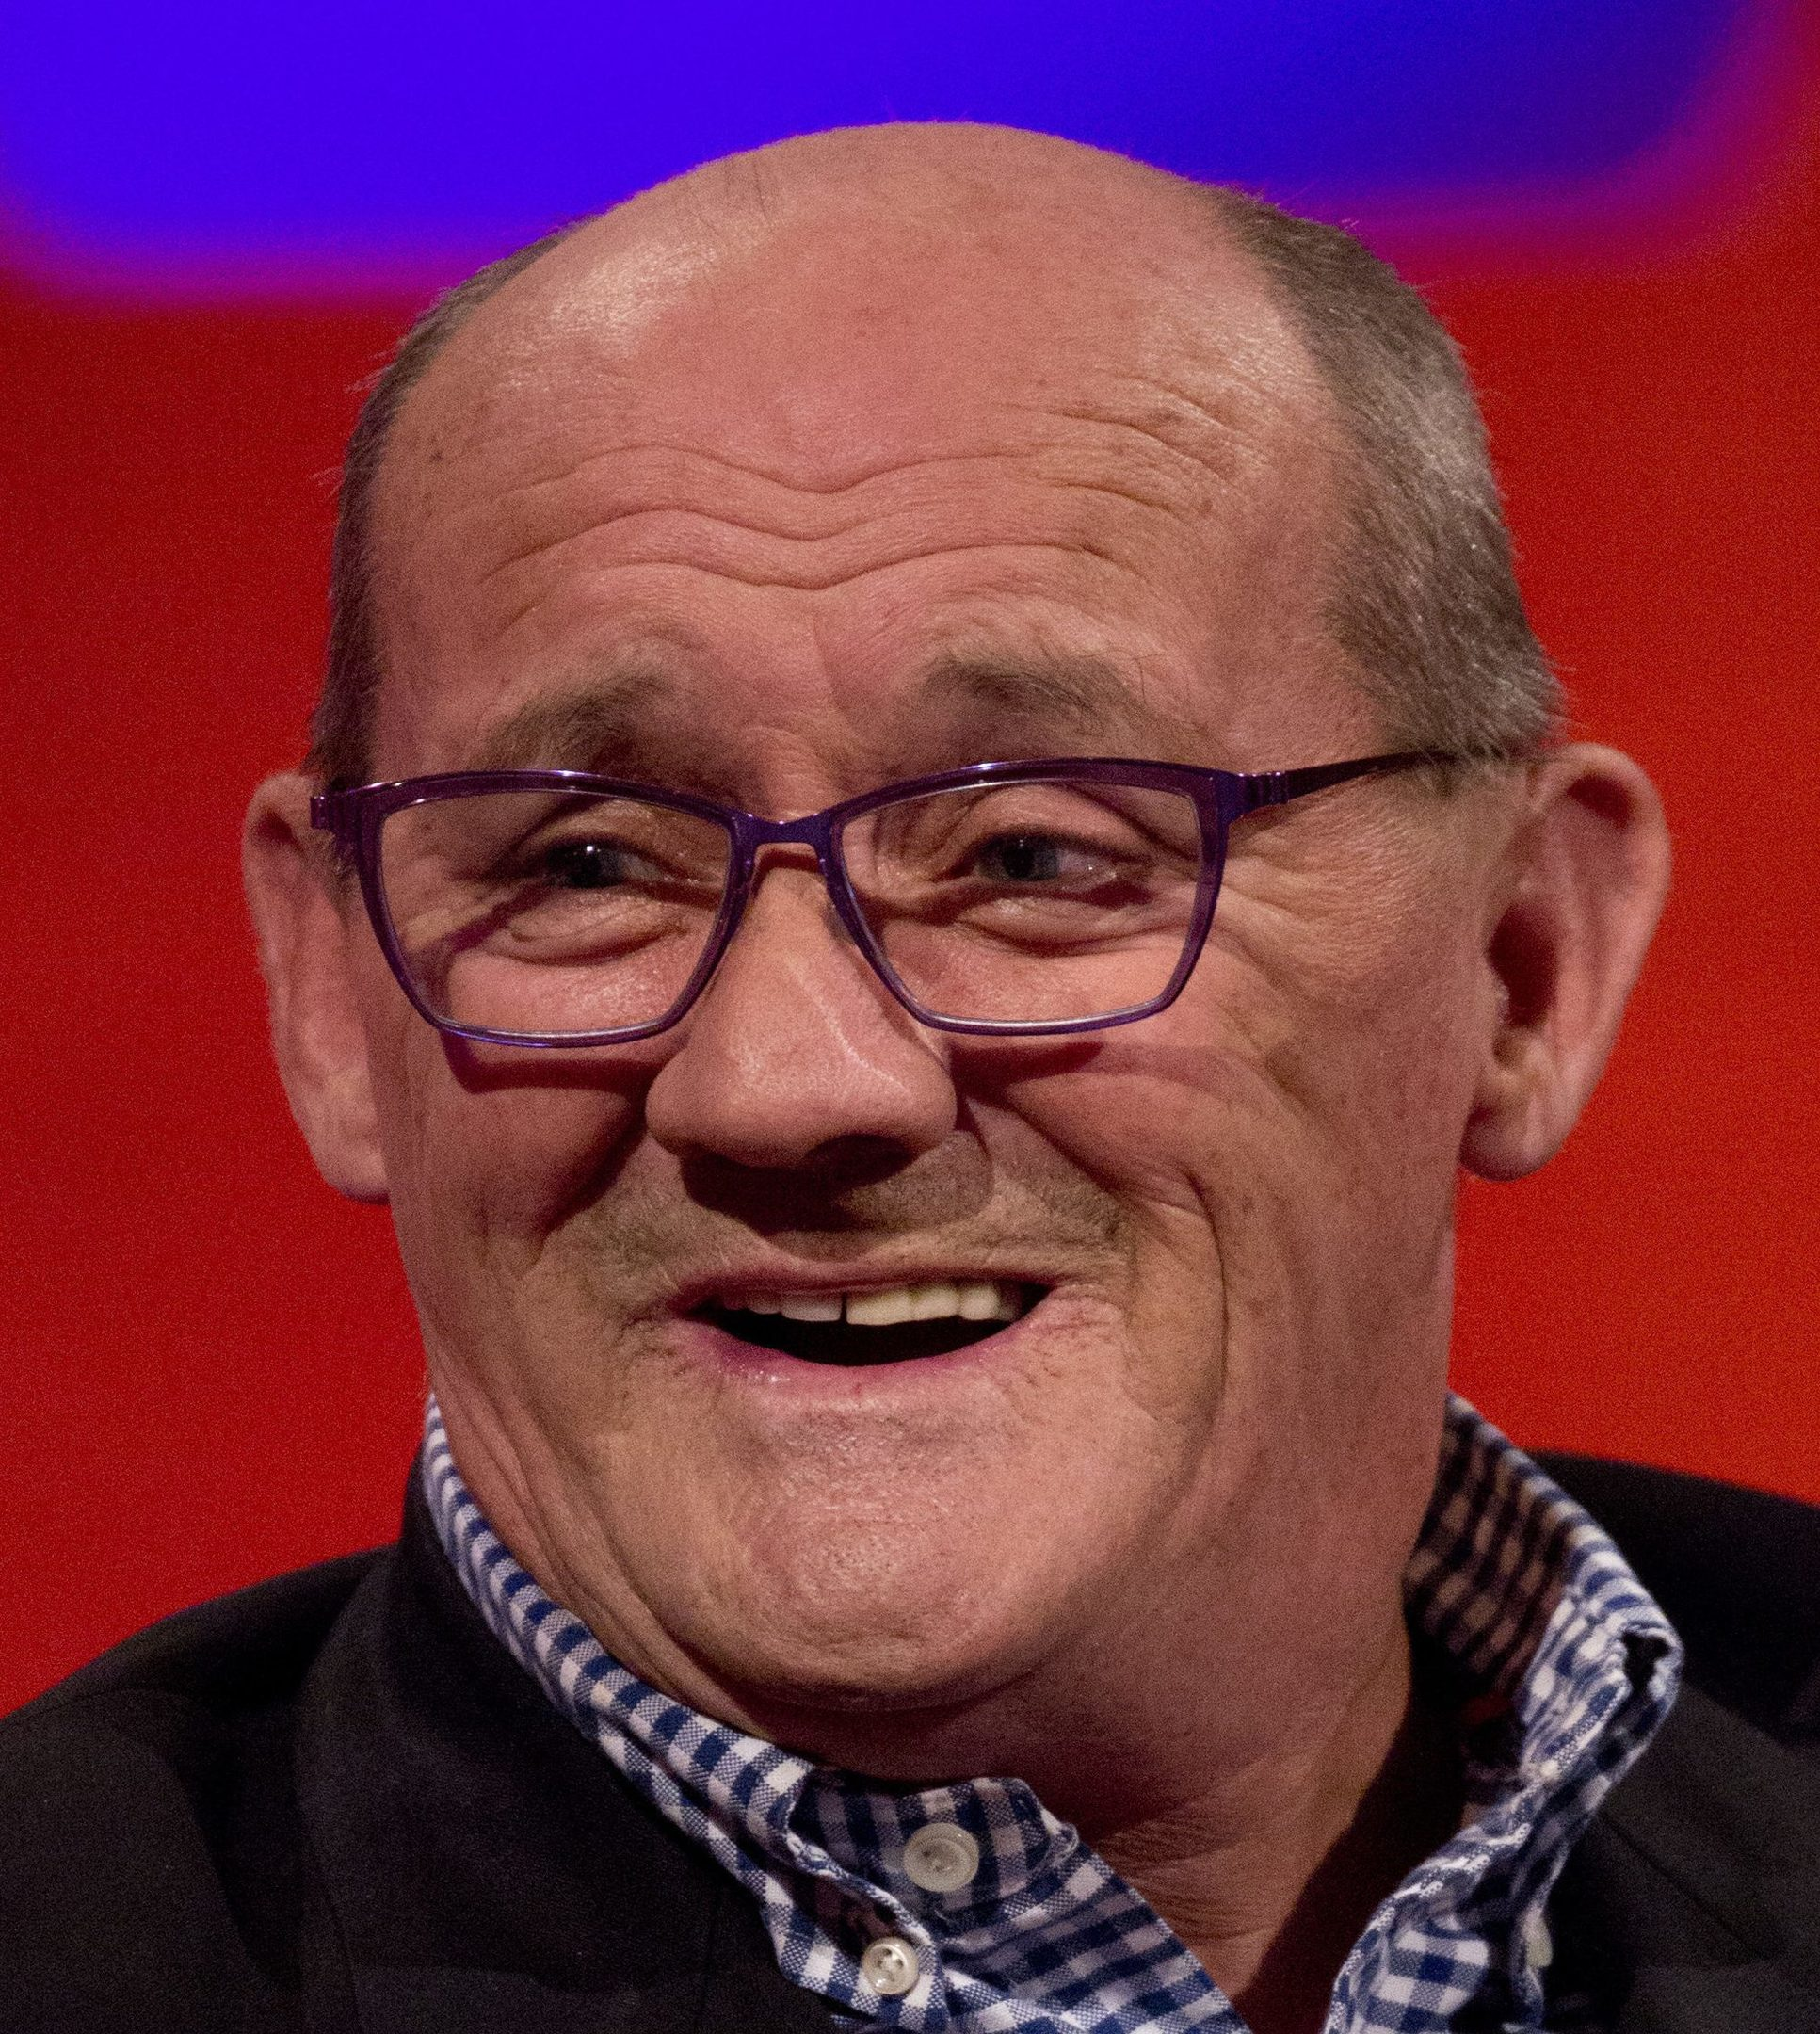 Brendan O'Carroll during the filming of the Graham Norton Show (PA Images on behalf of So TV)